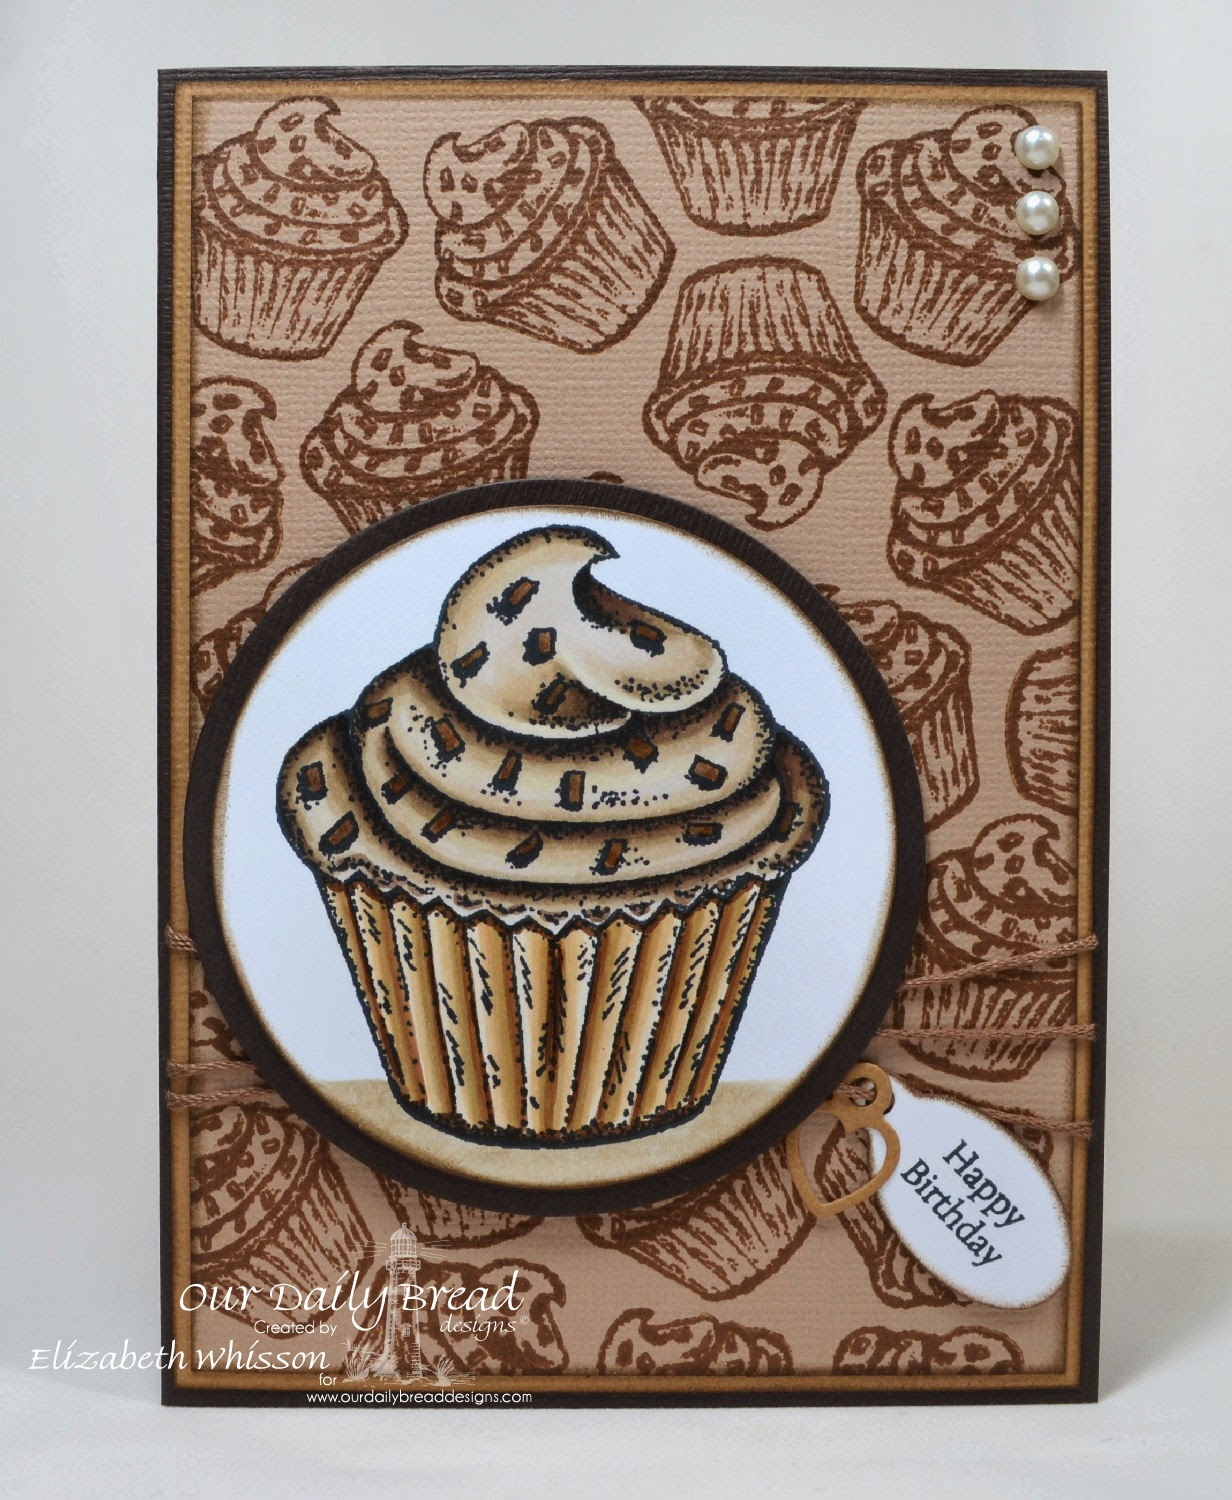 Our Daily Bread Designs, Cupcake Single, Baking Gift Tags, Mini Tag Sentiments, ODBD Mini Tag Dies, ODBD Matting Circles Dies, ODBD Circle Ornament Dies, Designed by Elizabeth Whisson